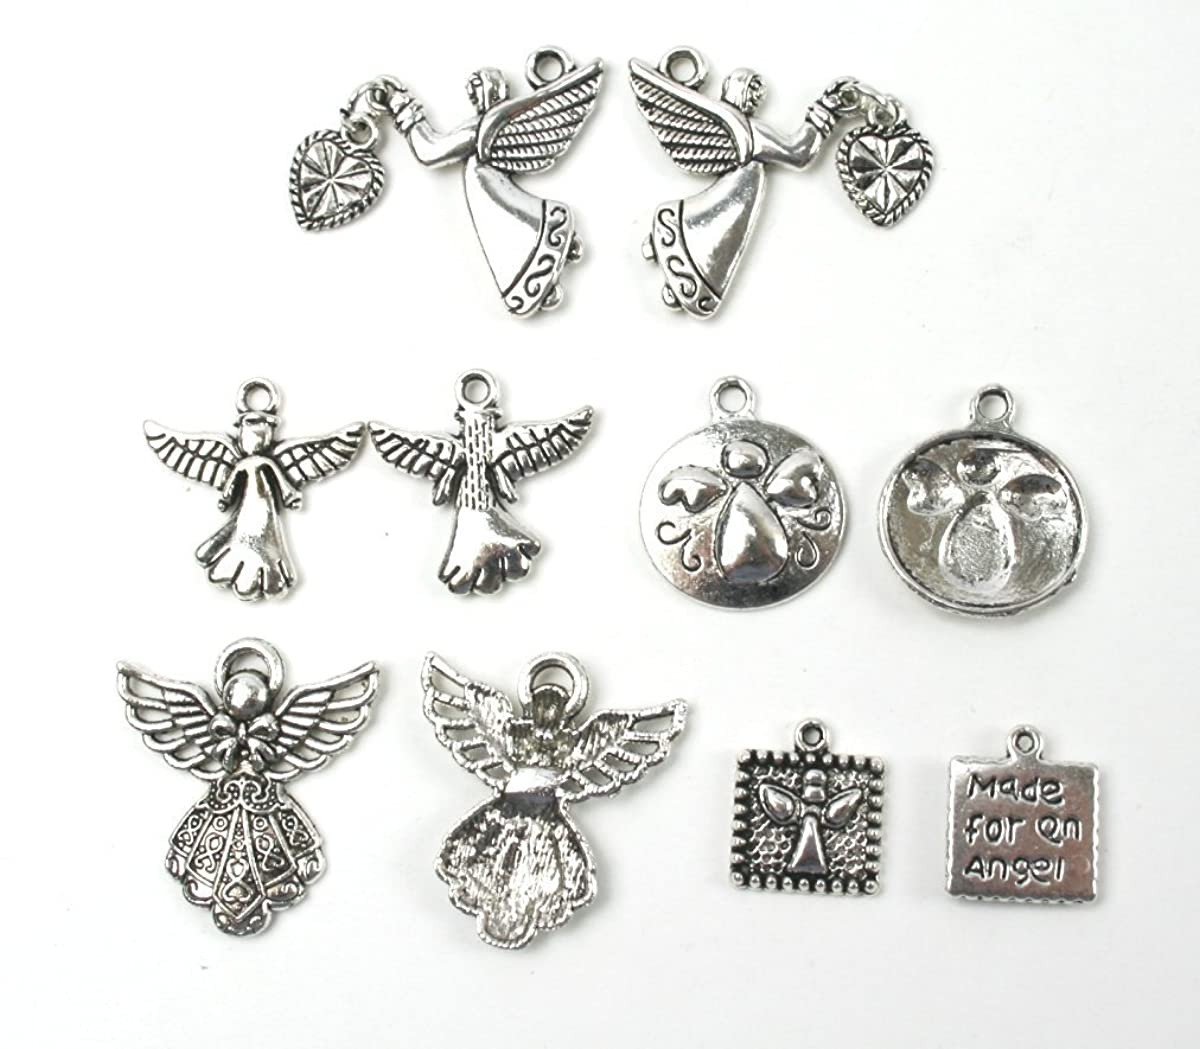 Angel Charms Mixed 50 Pc Set Antiqued Silver Metal with Crafts Kit Storage Container